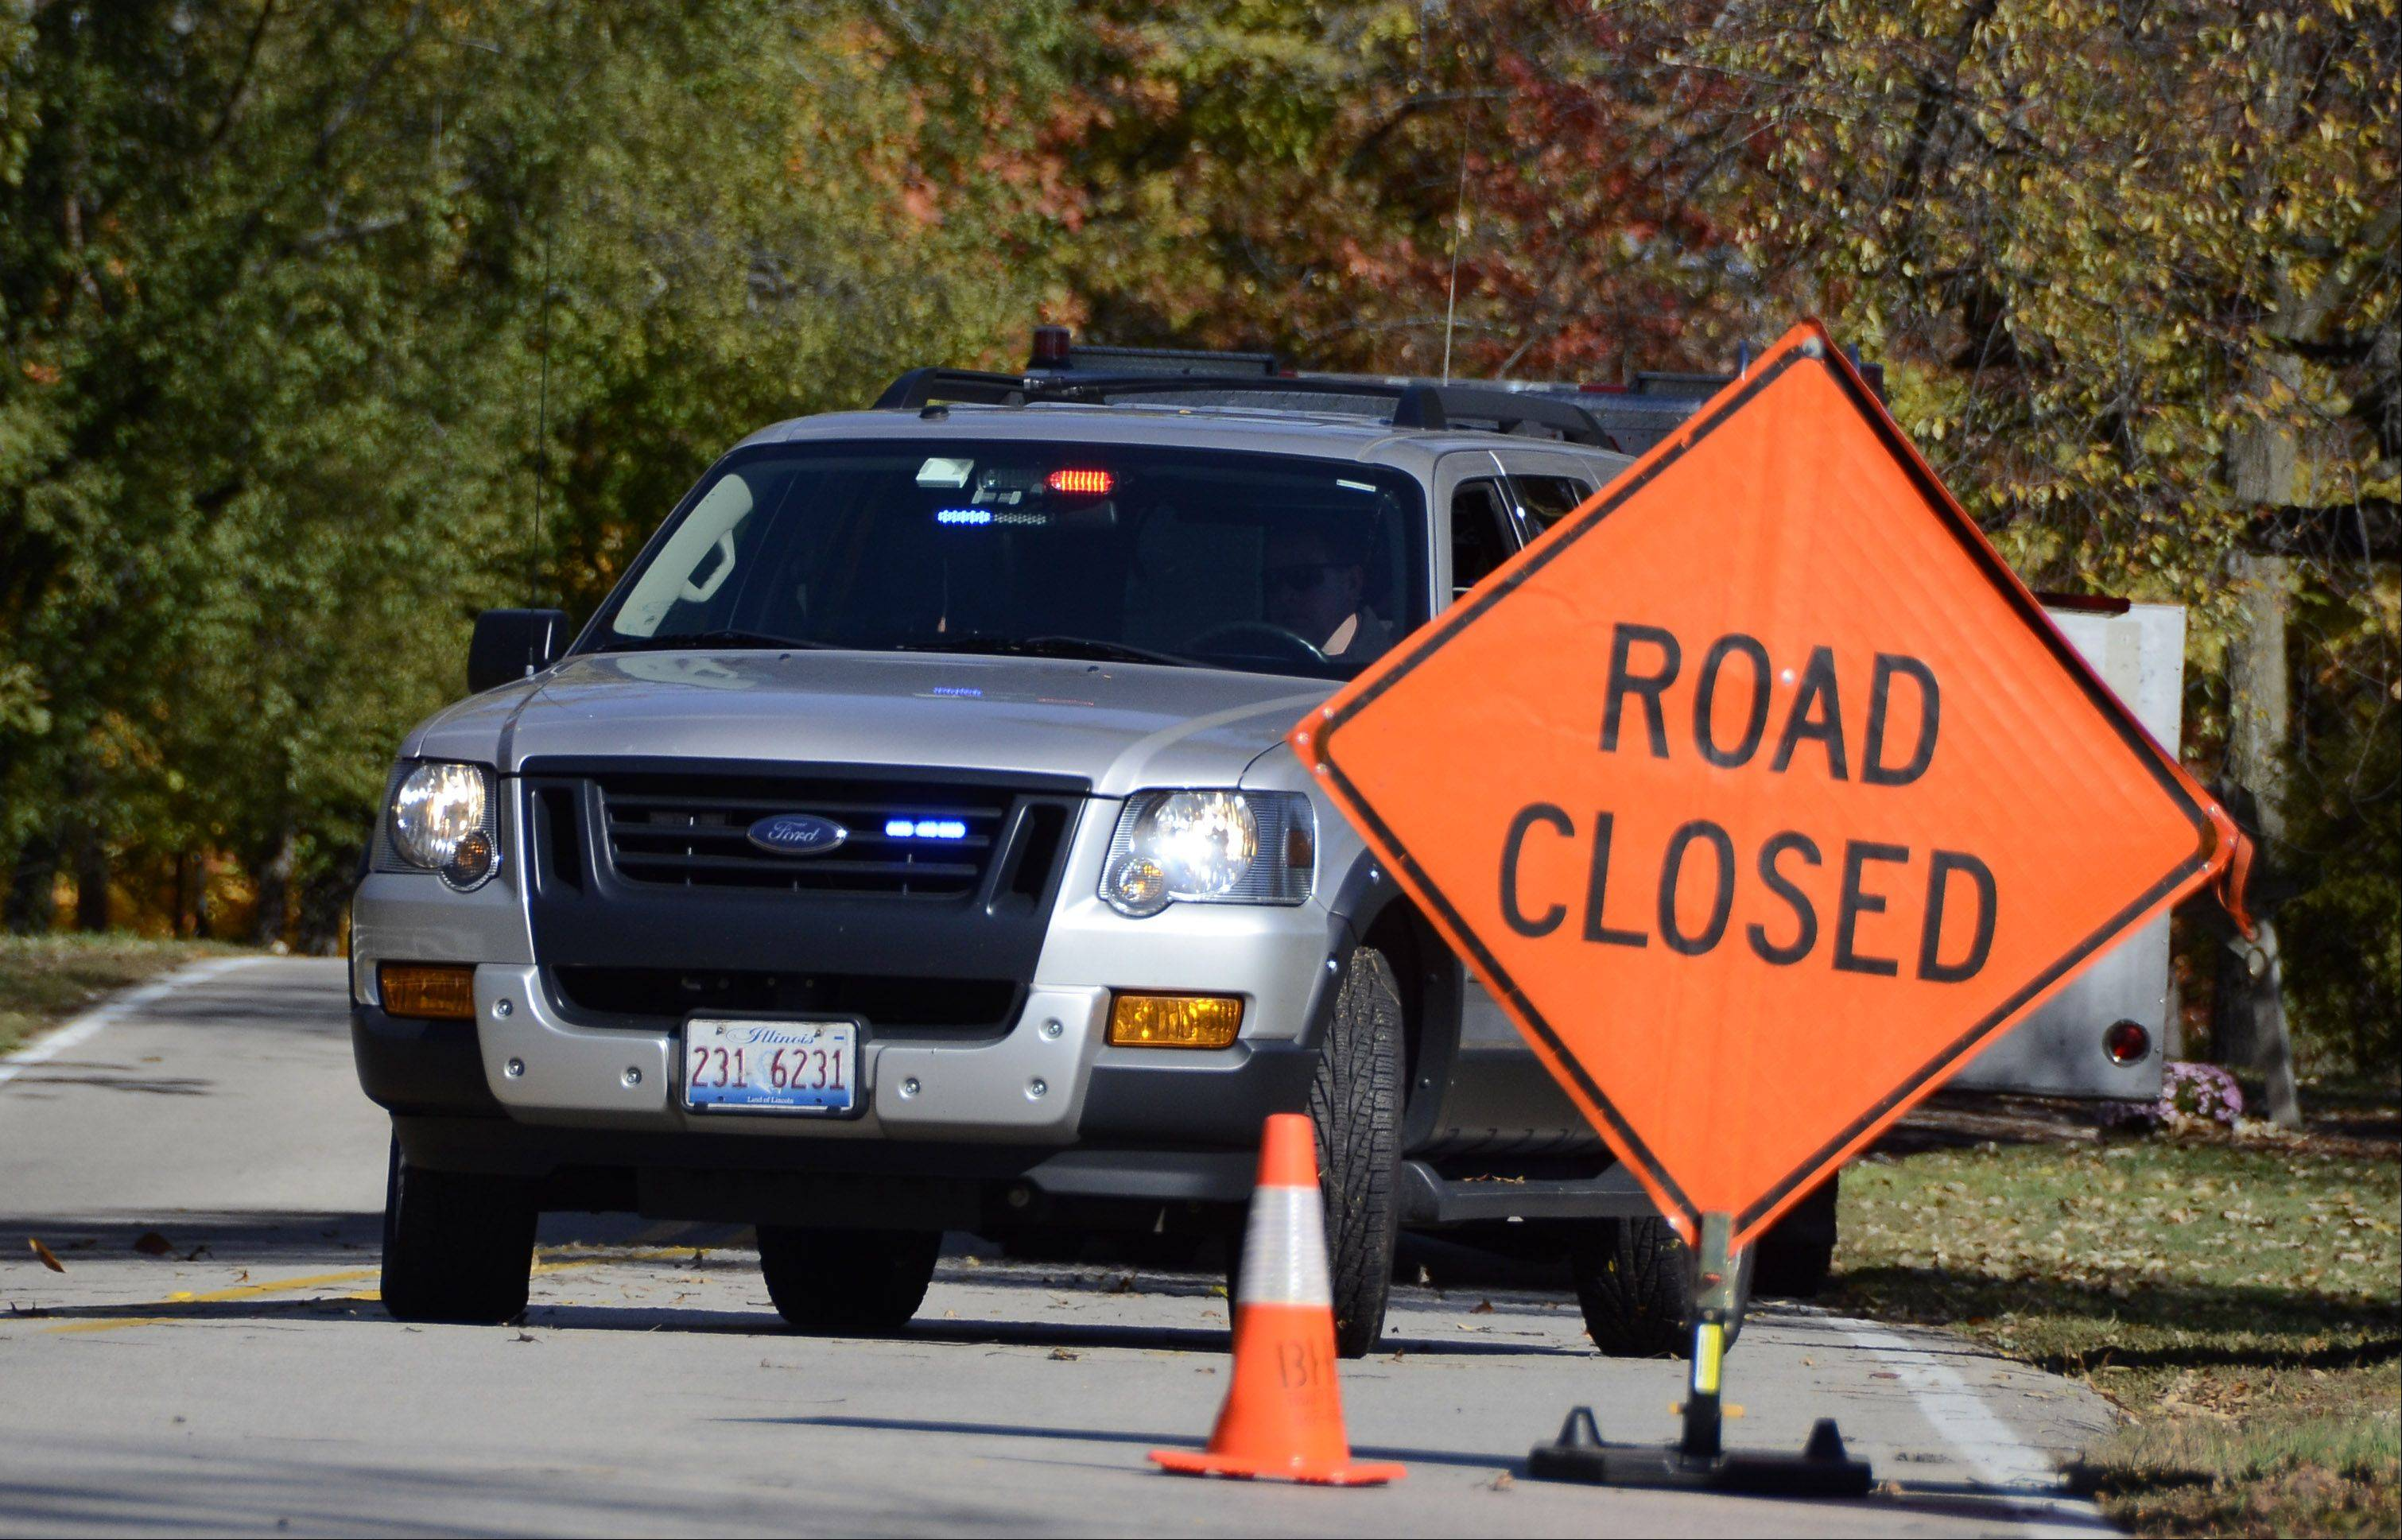 Spring Creek and Ridge roads in Barrington Hills were blocked this morning while fire crews battled a four-alarm blaze just north of the intersection.